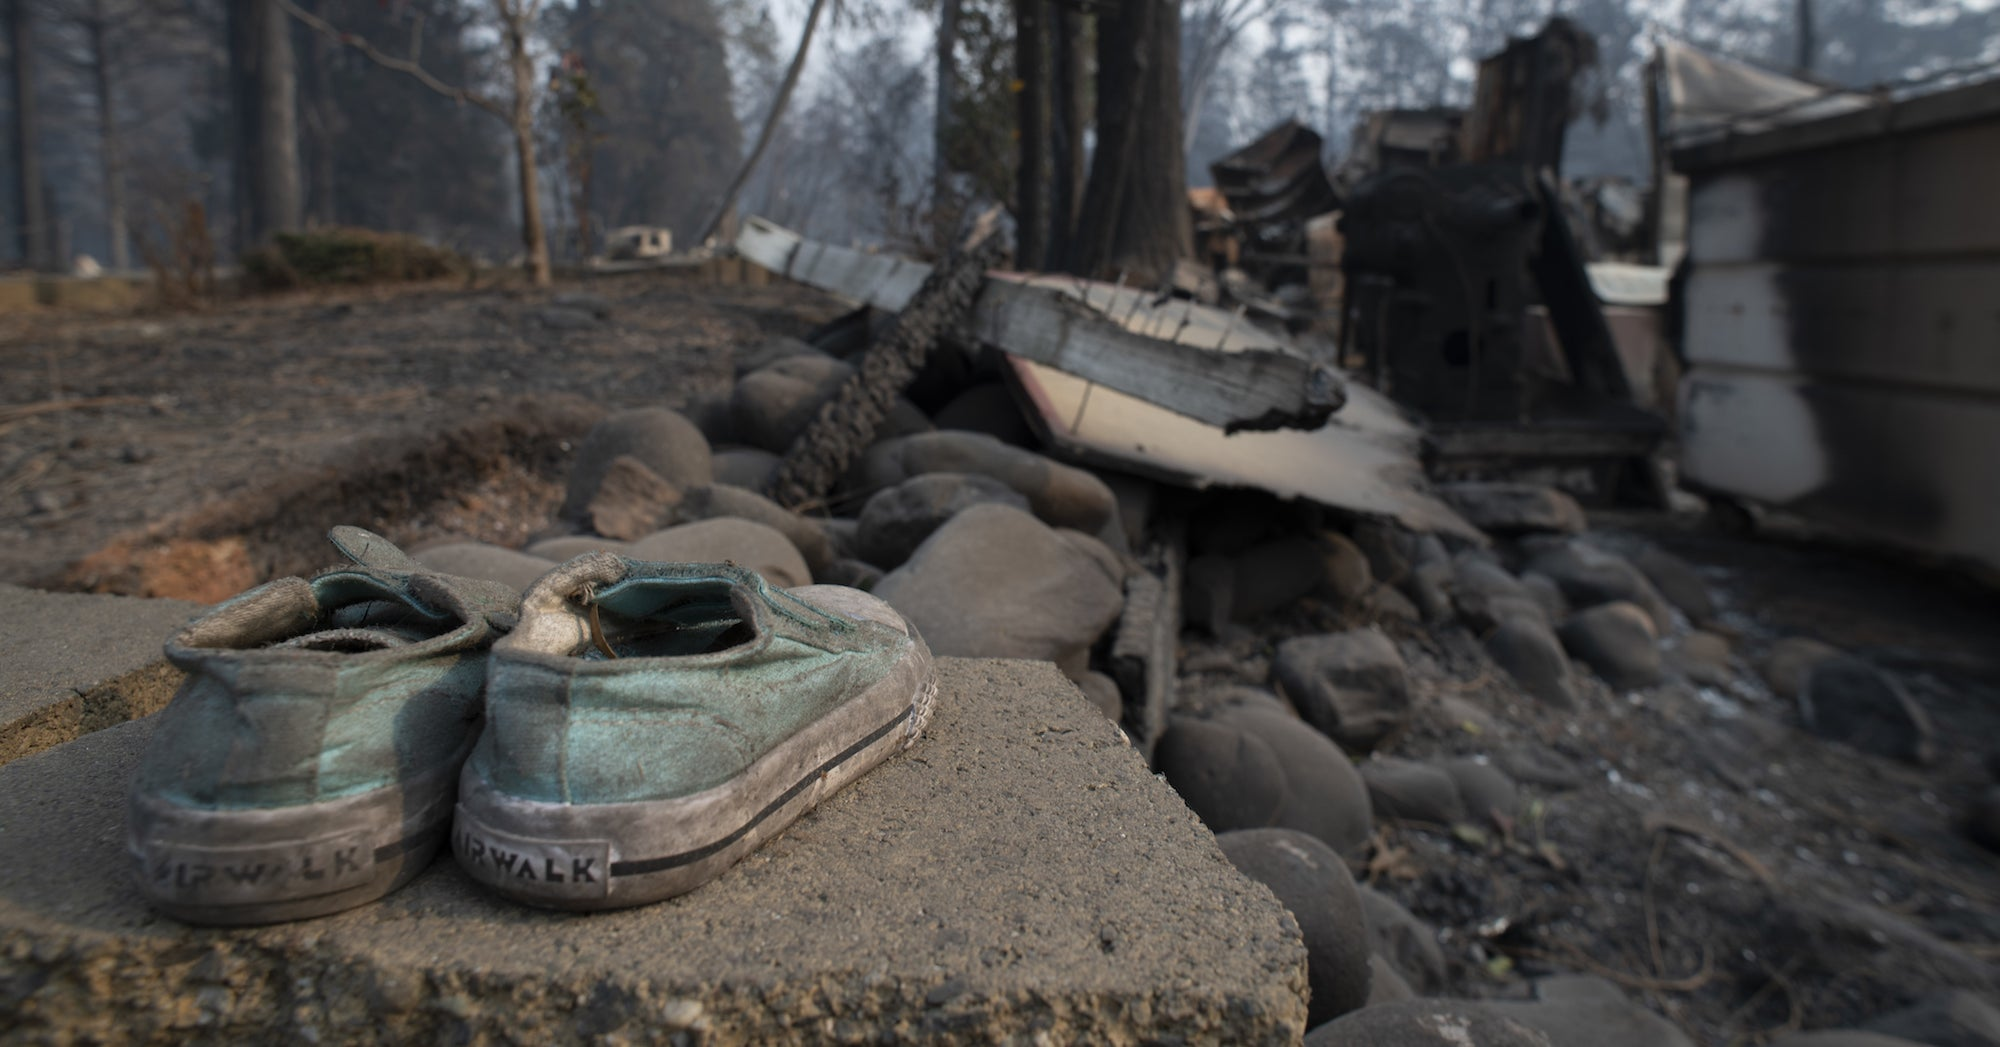 e7cdbd790 California Camp Fire Now 100% Contained After Wildfire Death Toll Rises To  88